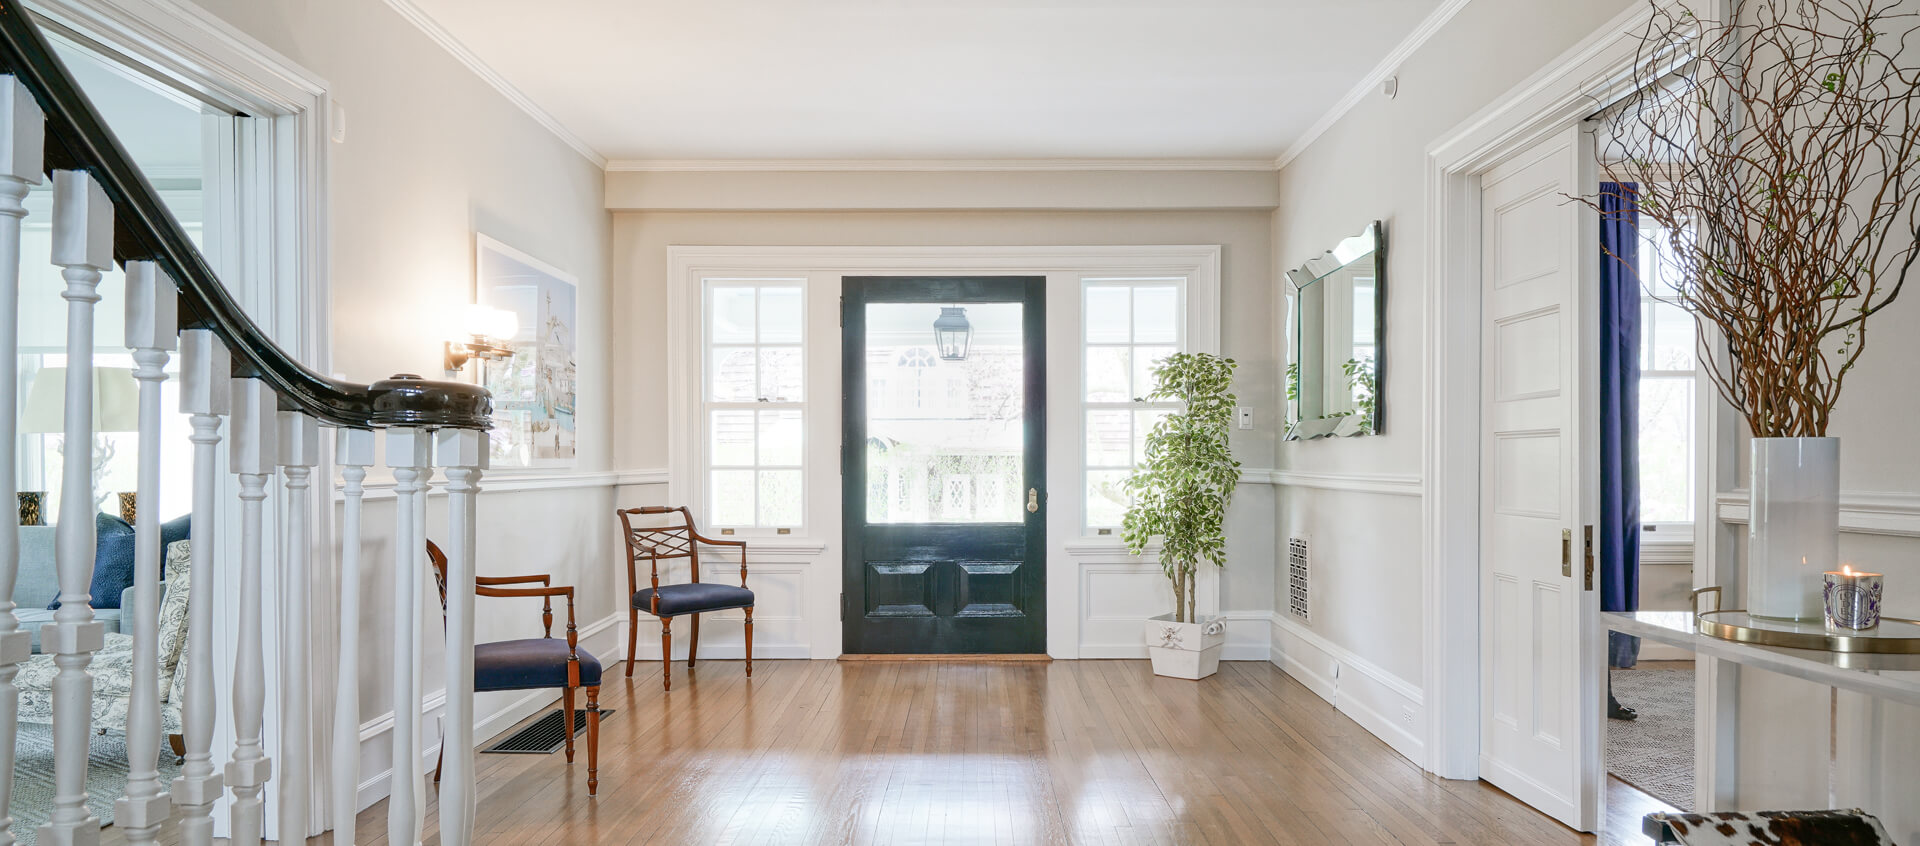 Looking for painting jobs in Philadelphia? Visit John Neill Painting & Decorating.